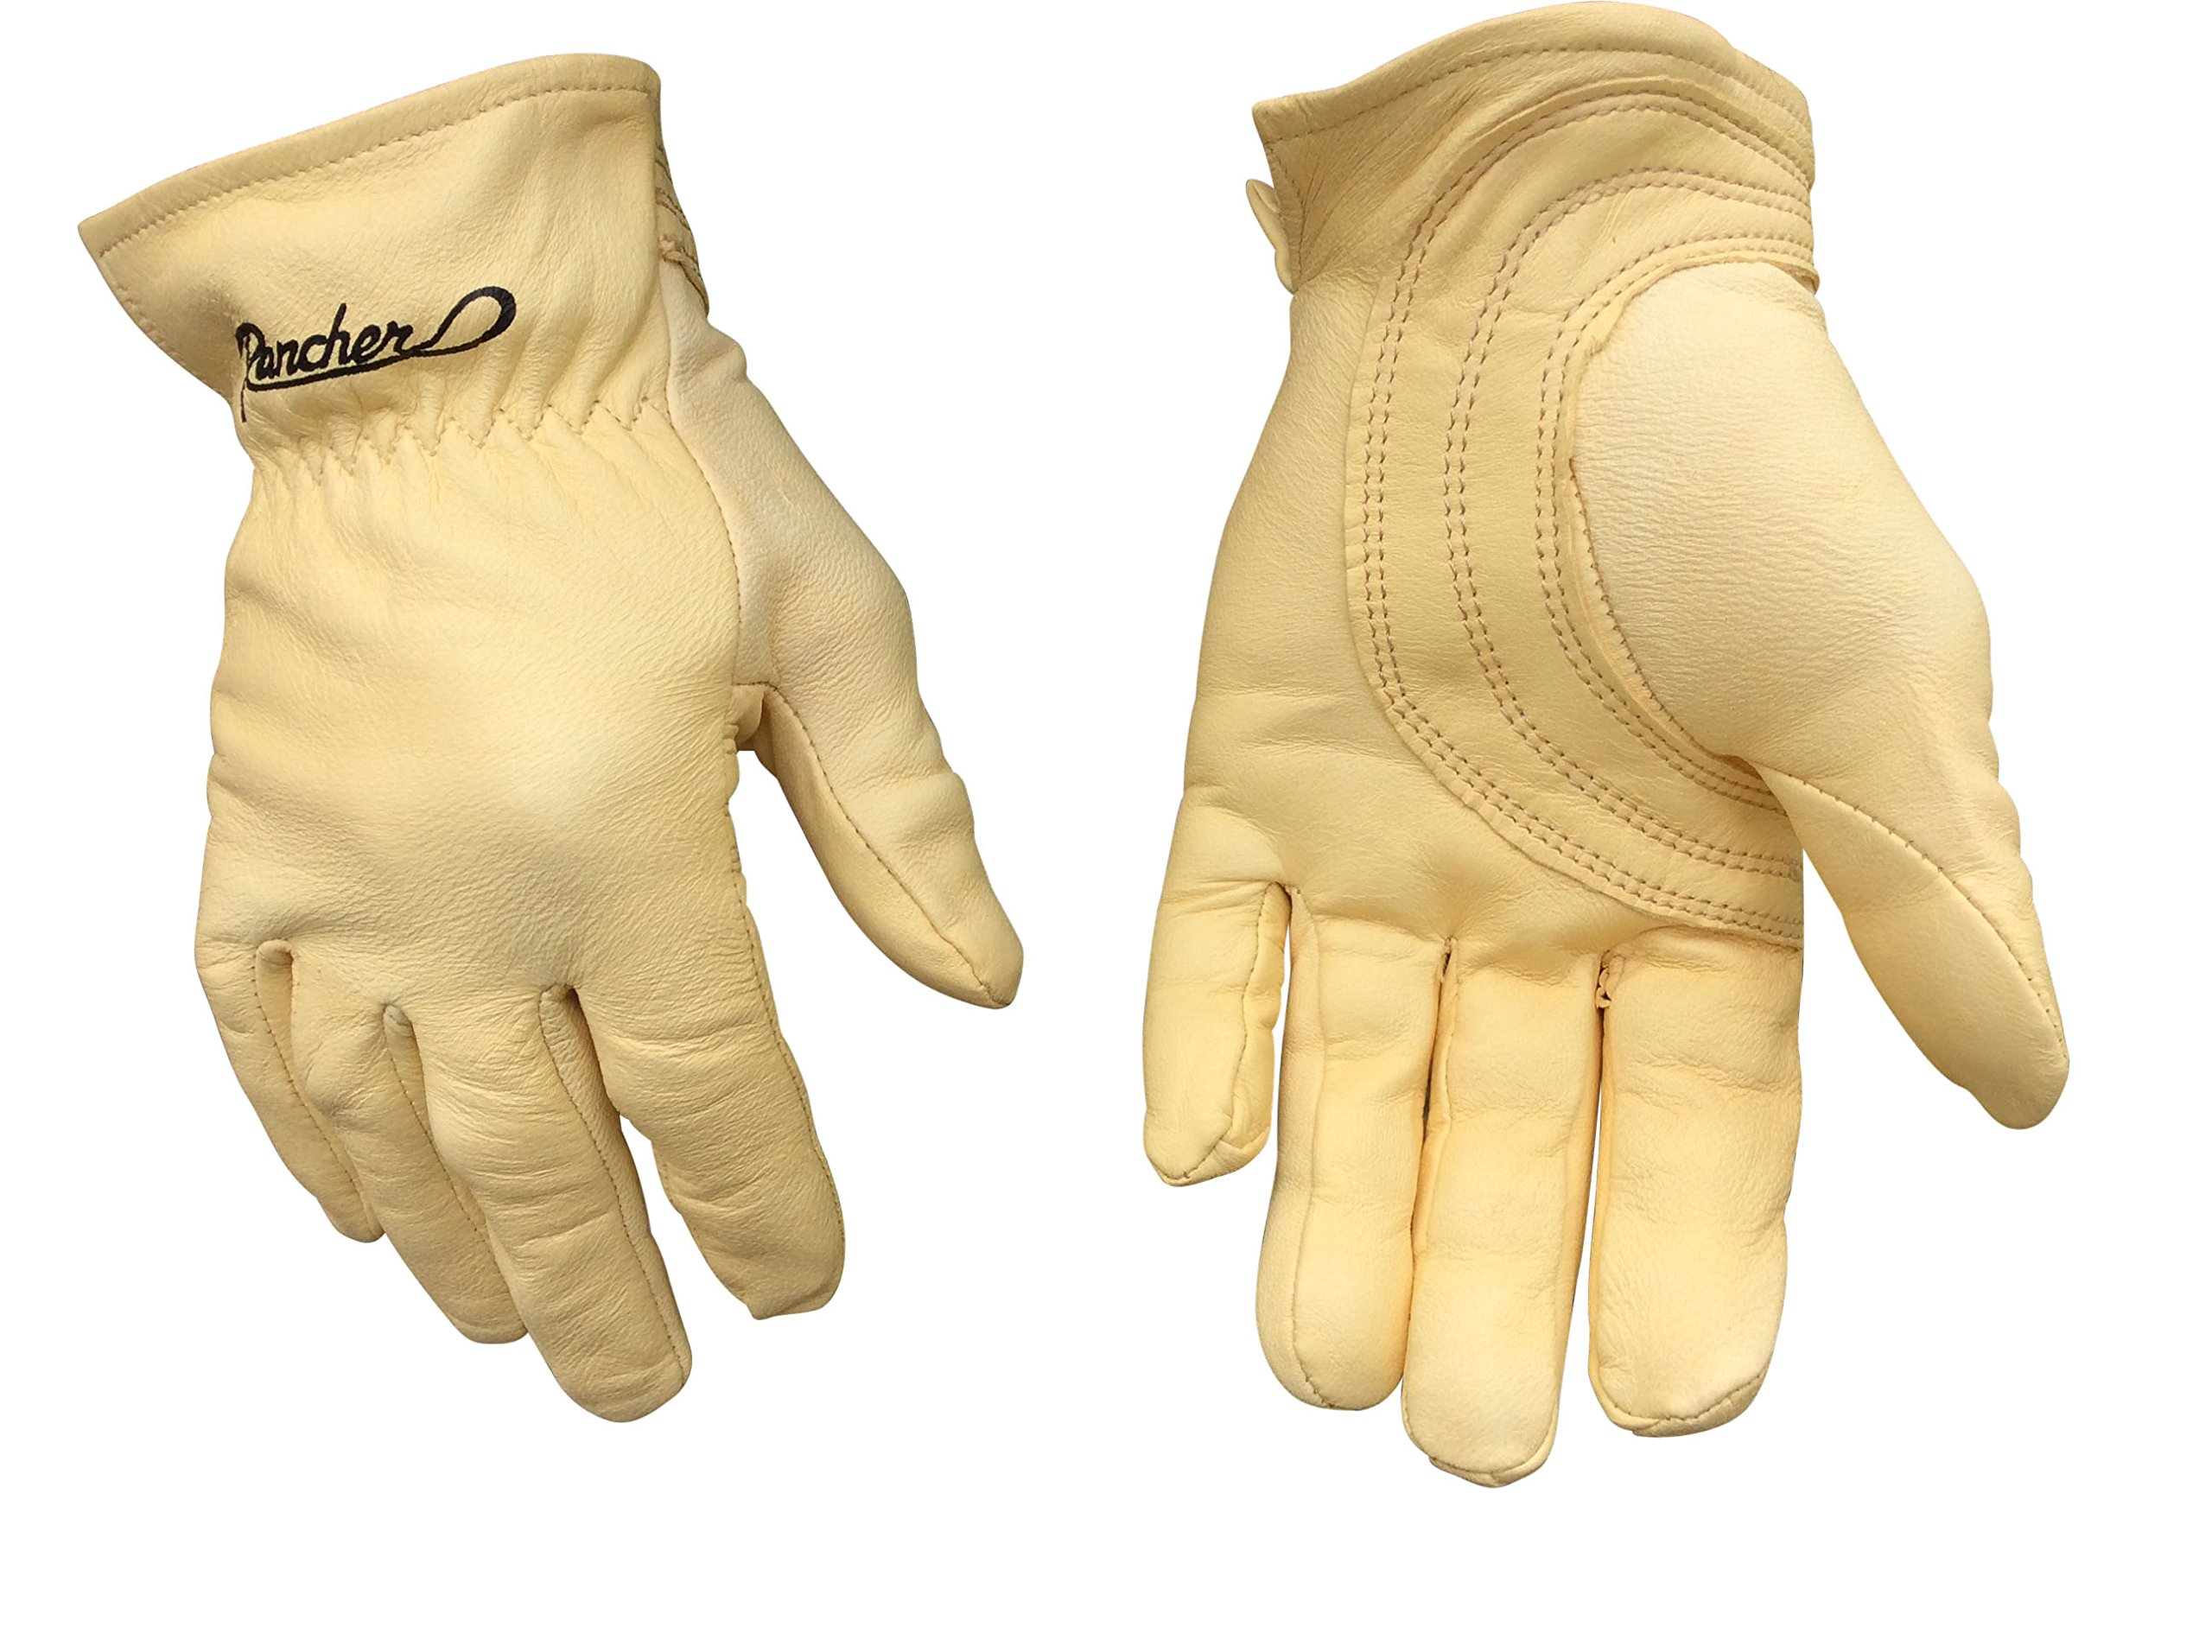 Leather work gloves ebay - Product Overview